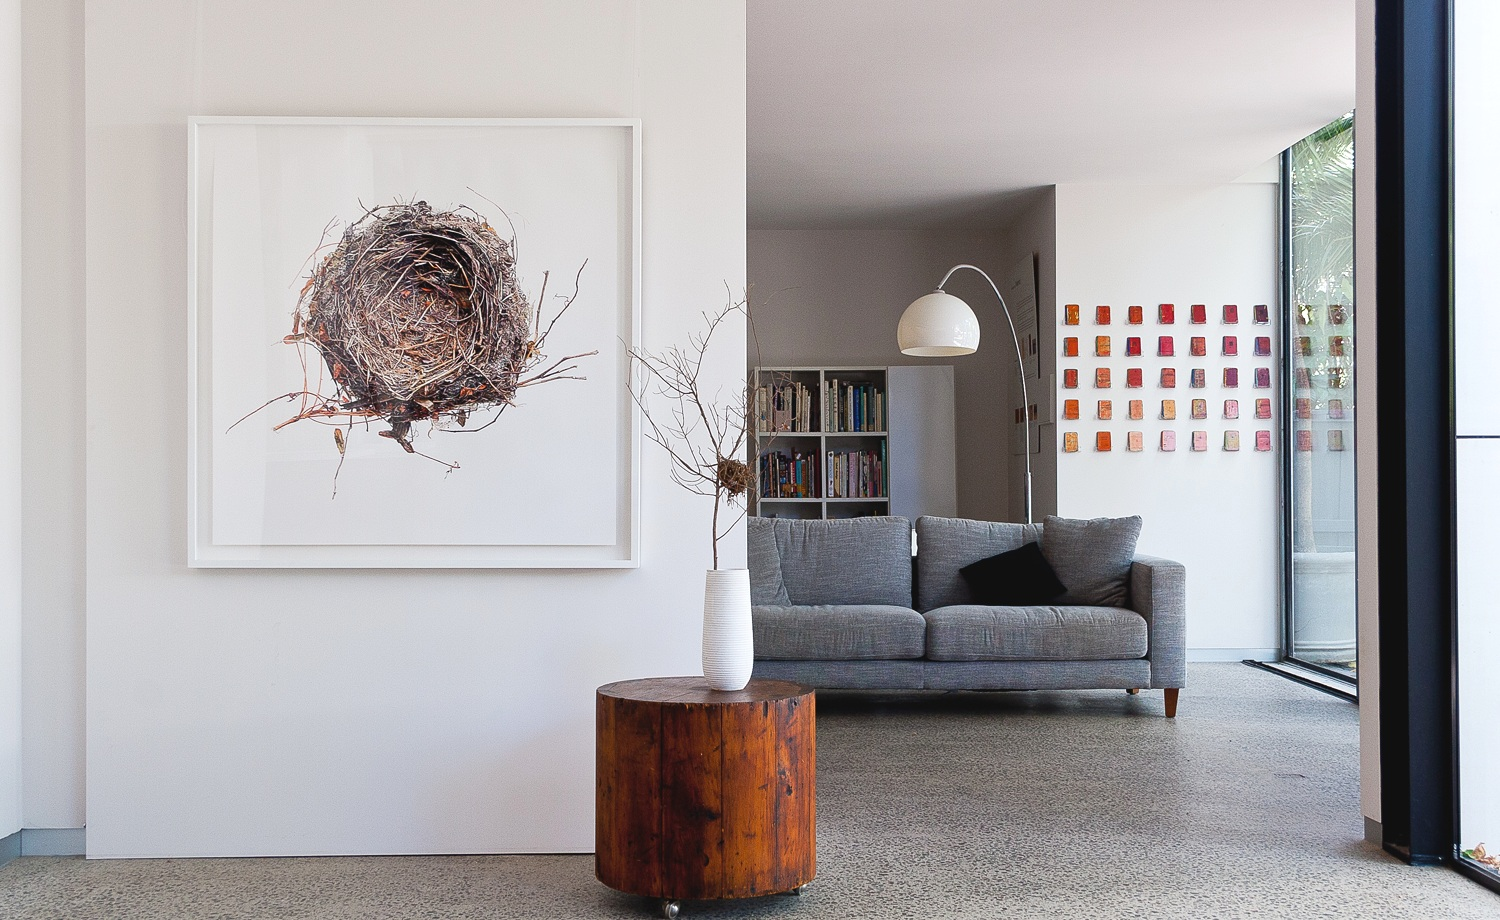 George Alamidis - Fine art print. Framed.120cm x 120cmThe magnified image of a found nest attempts to bring the viewer closer to the complexity of its architecture, in order to appreciate the energy invested in the creation of a home.$1500